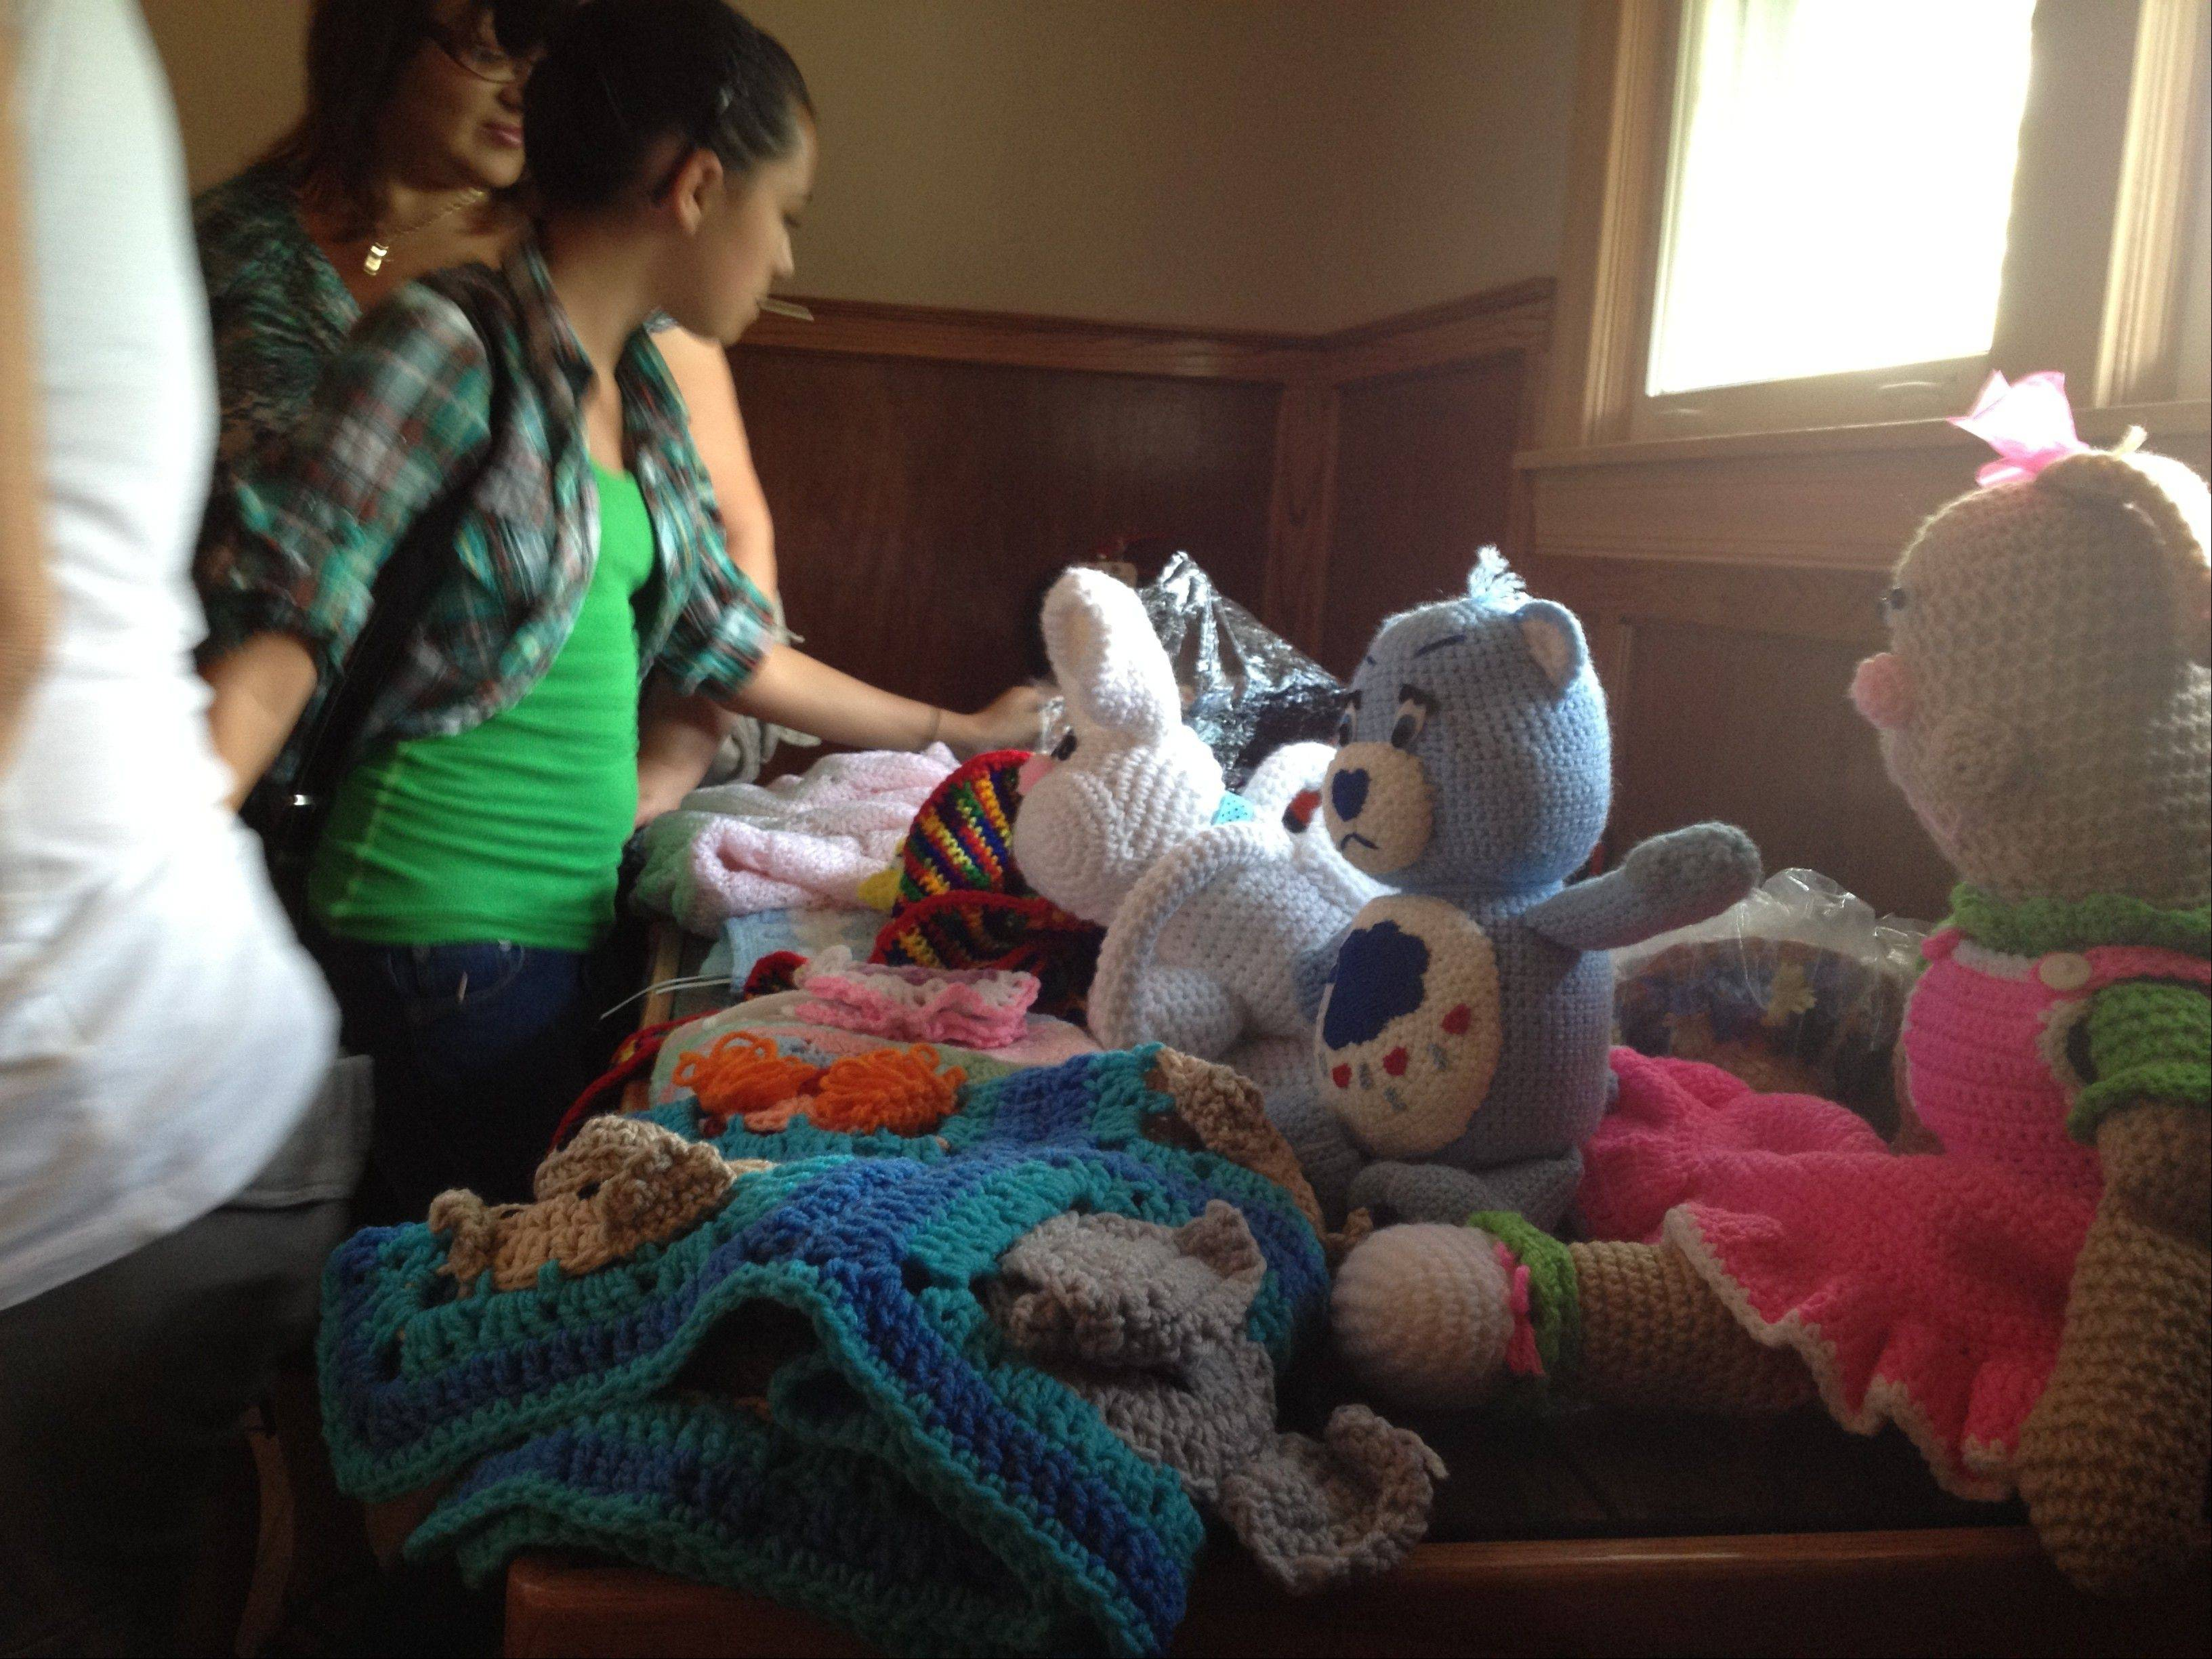 Nathan Saavedra's aunt and cousin, Michelle and Pamela Bridges, sold blankets, hats and toys they knitted for the fundraiser Sunday at Lynfred Winery in Wheeling.